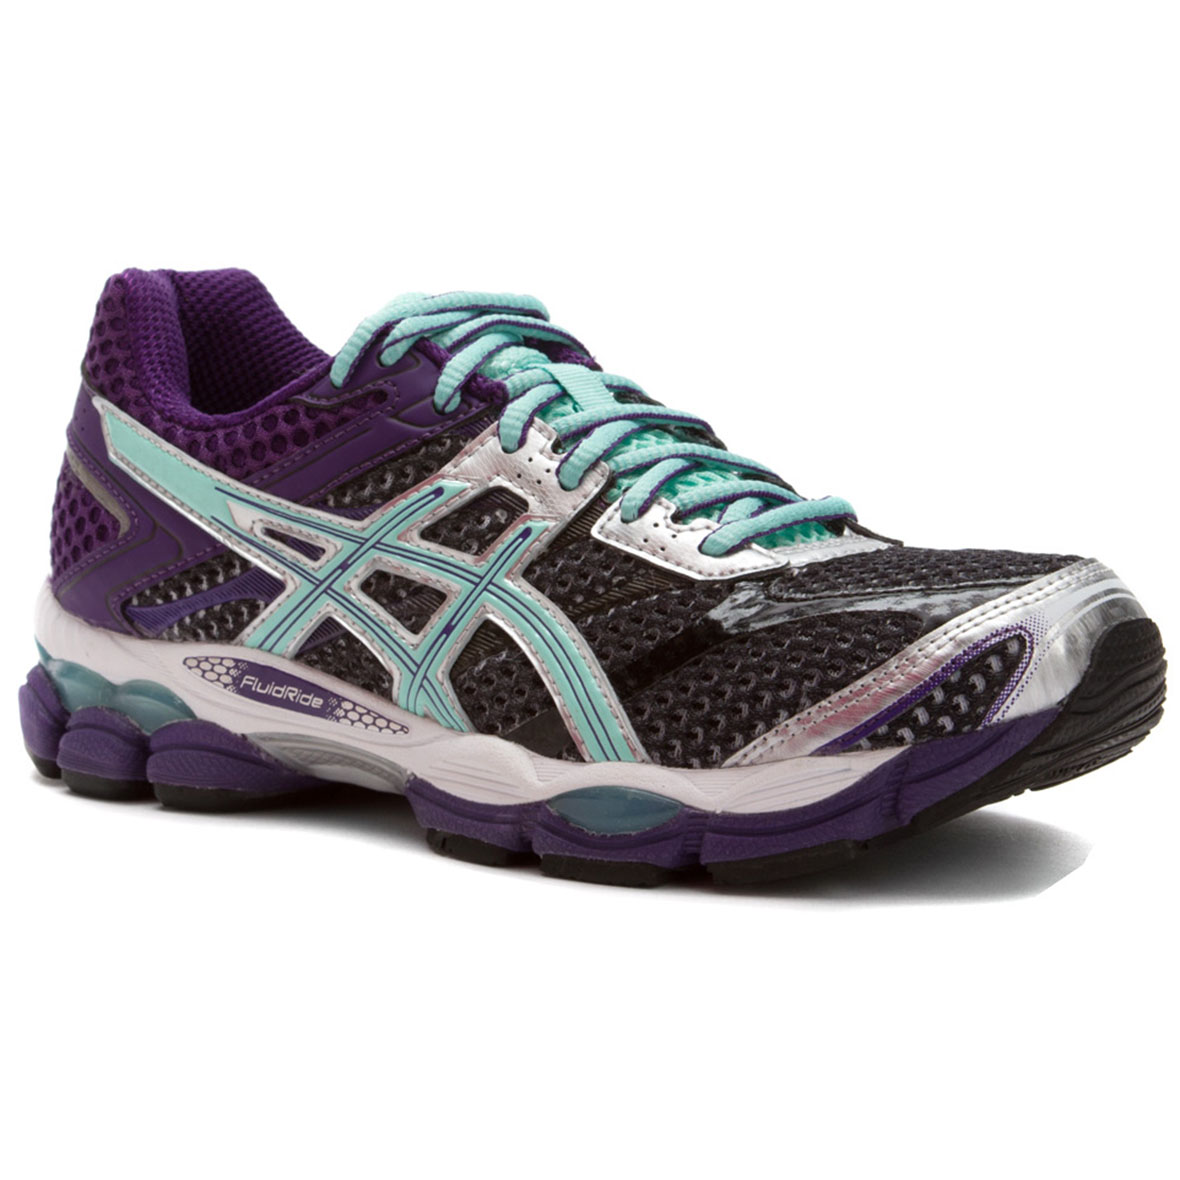 ASICS CLEARANCE Especial